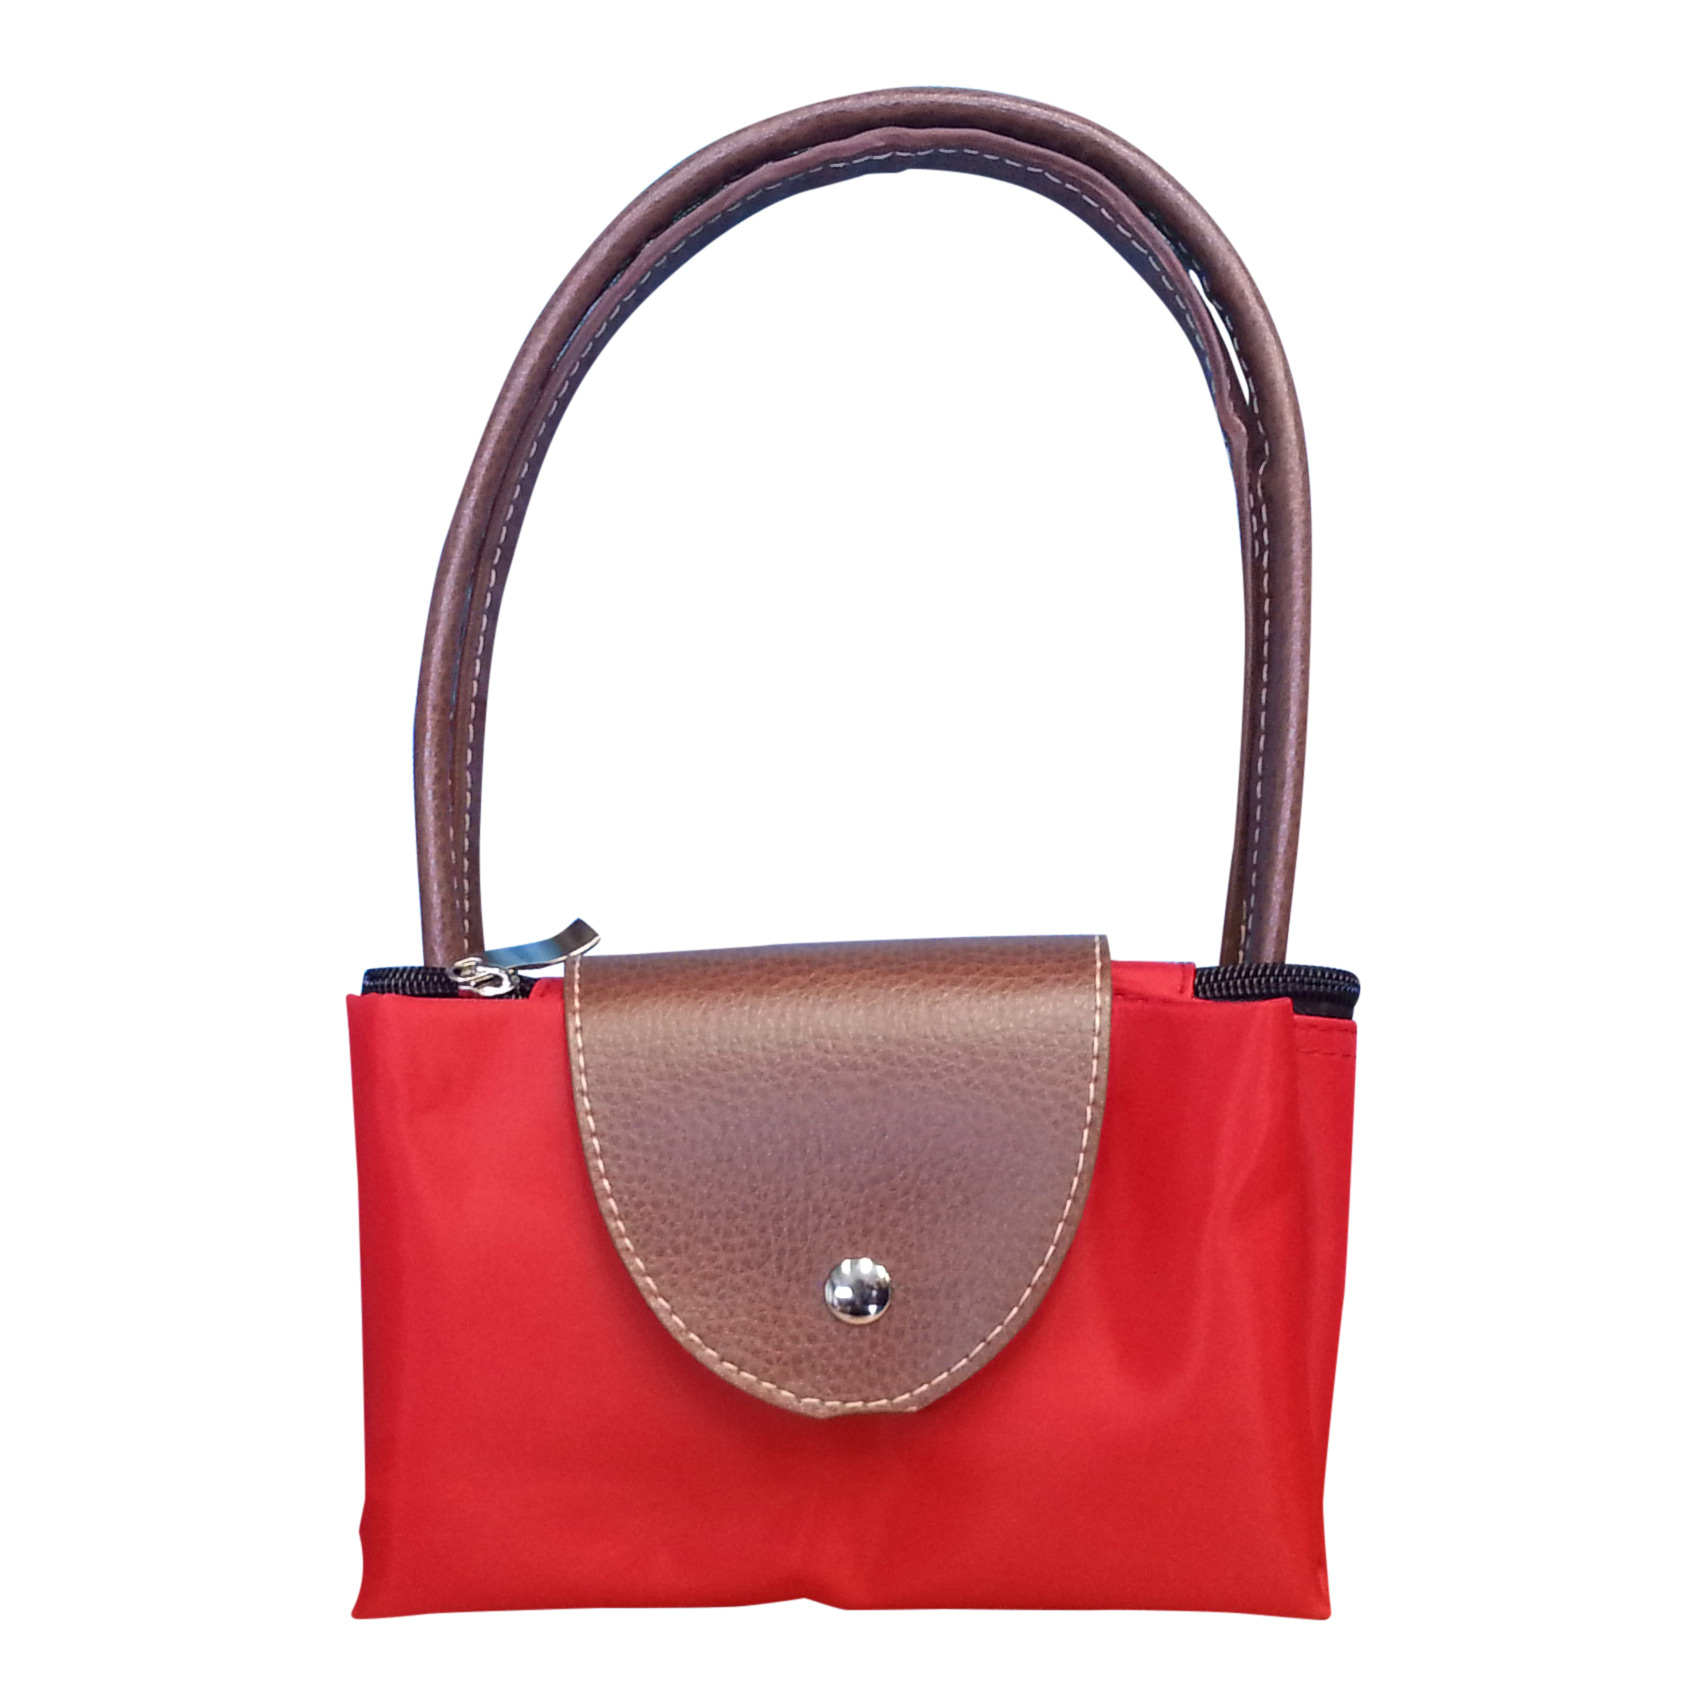 Benzi city bag S Roma rood 4388